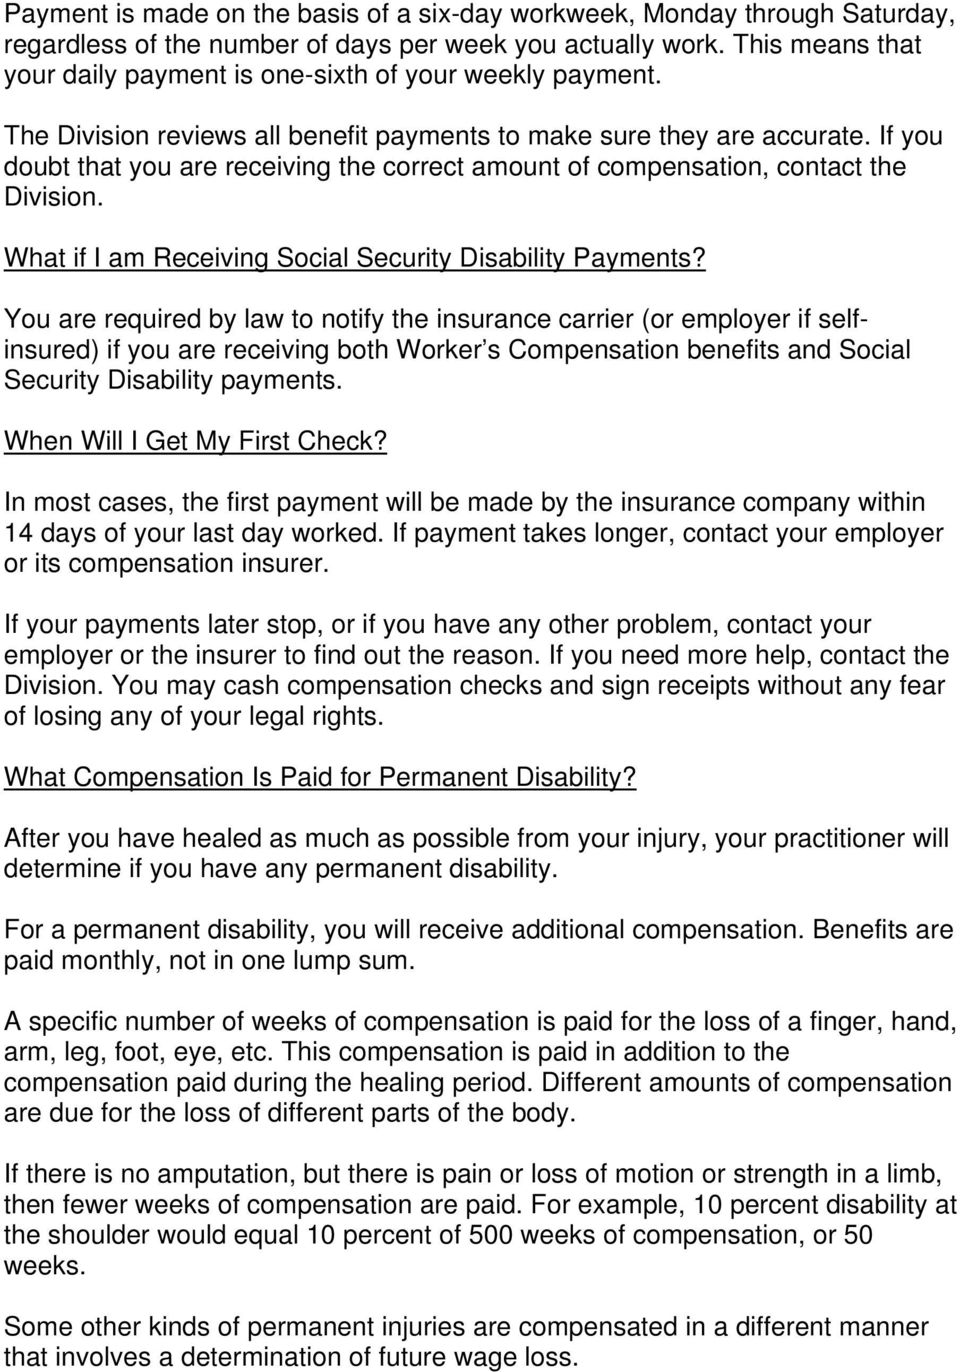 If you doubt that you are receiving the correct amount of compensation, contact the Division. What if I am Receiving Social Security Disability Payments?